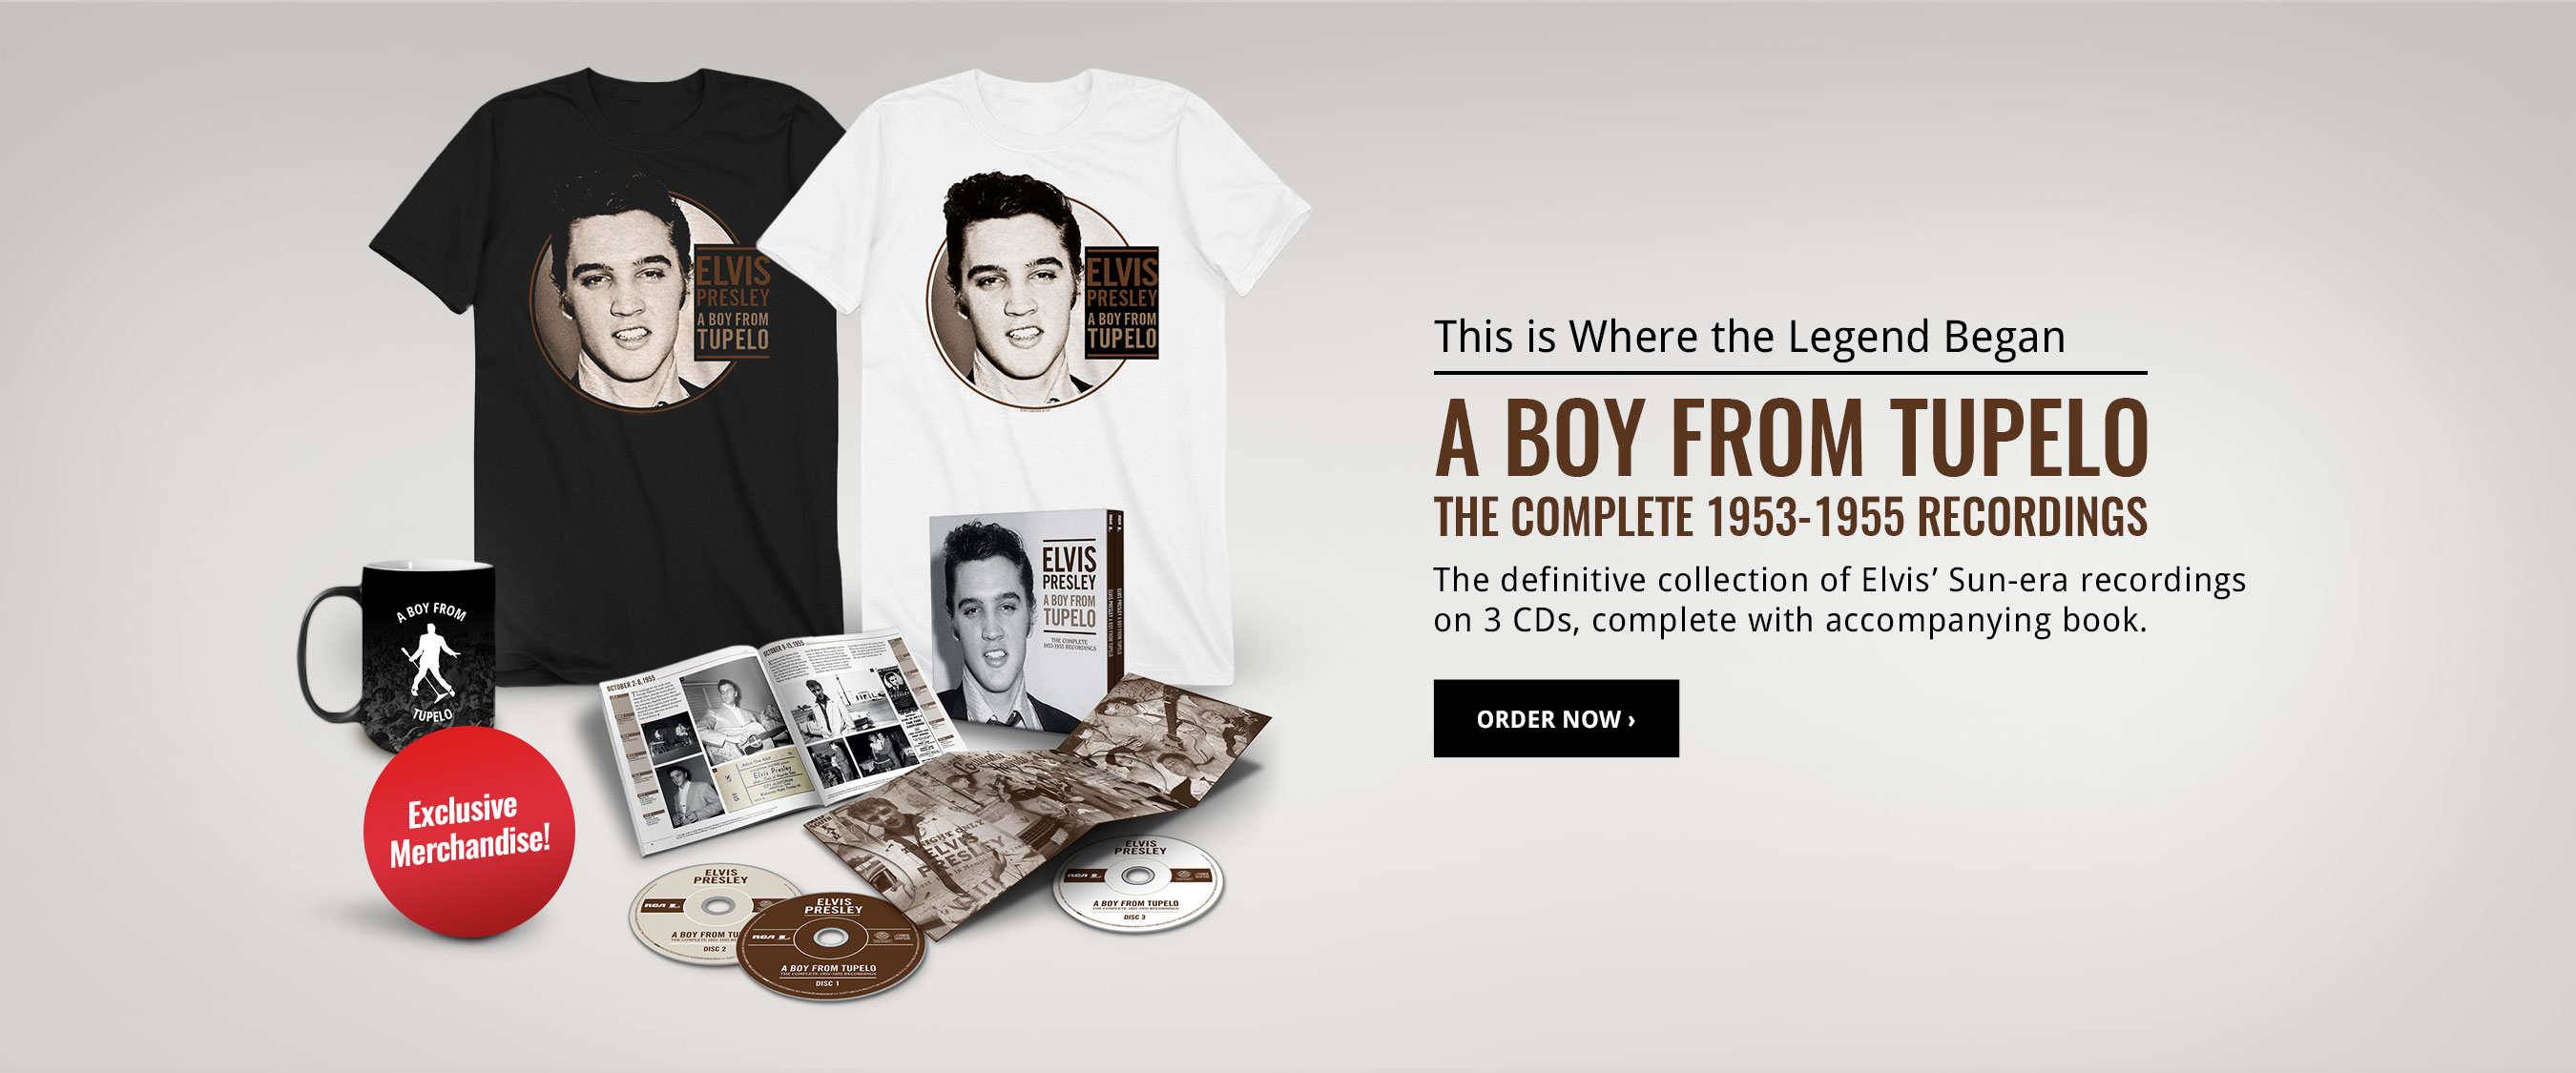 Order A Boy From Tupelo Exclusive Bundles!